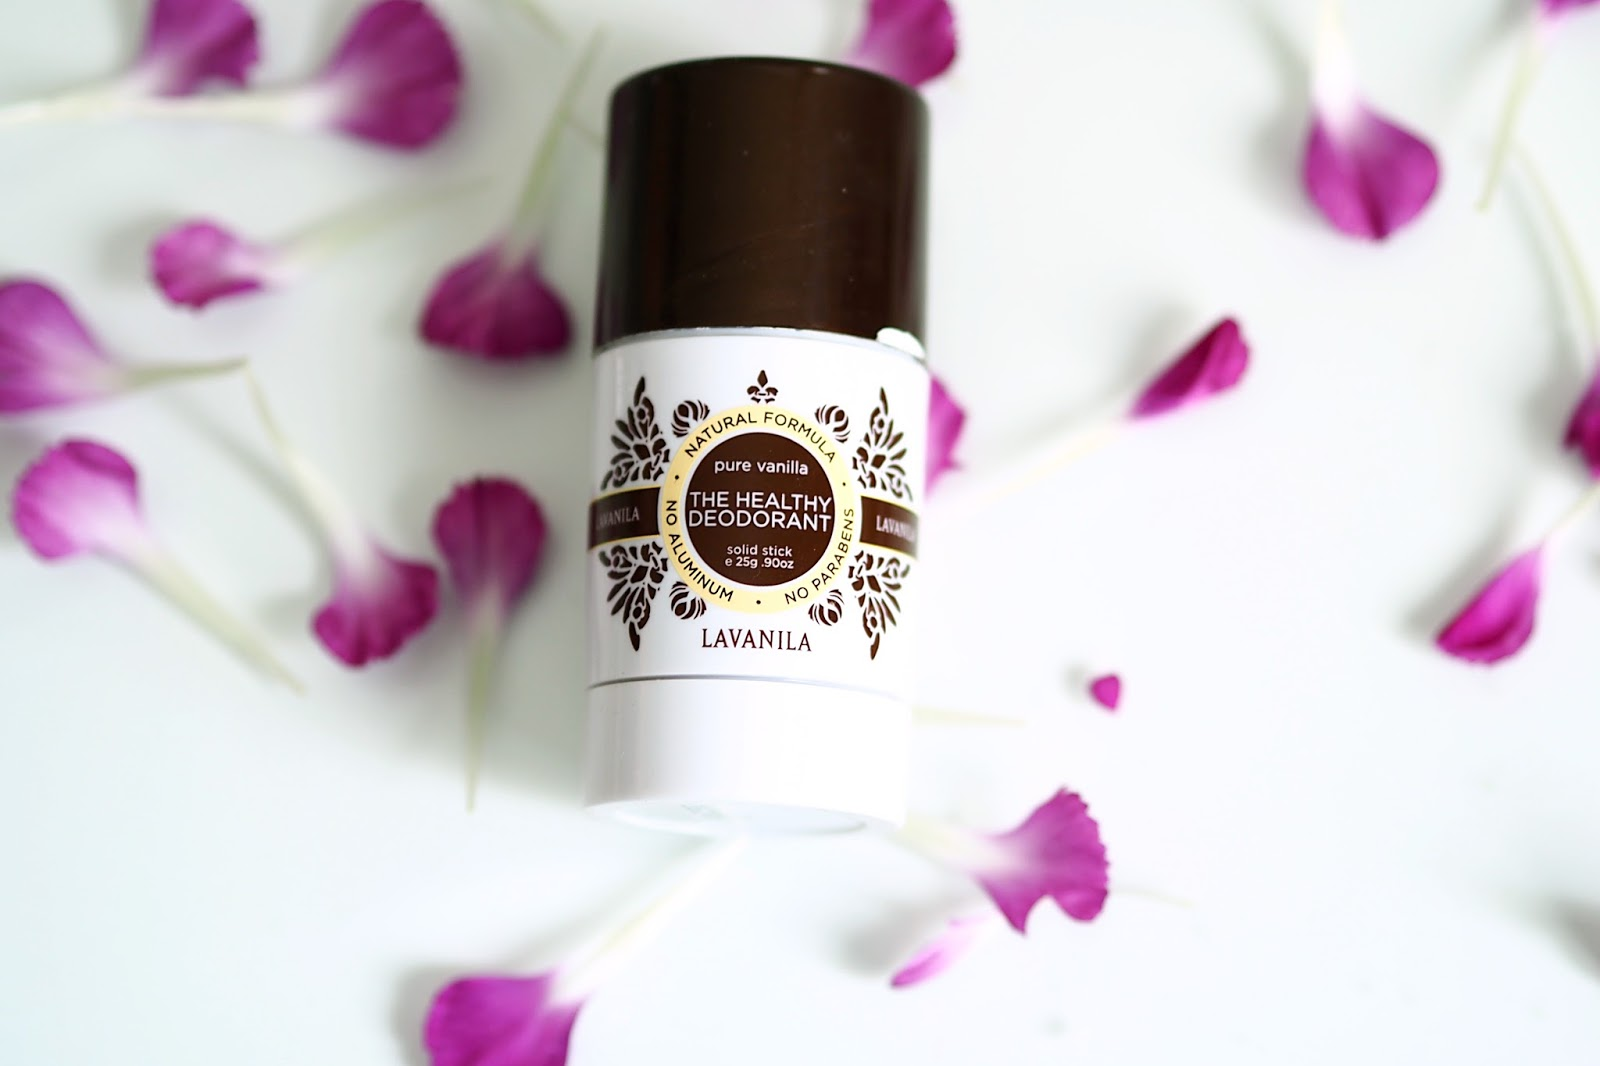 The healthy deodorant pure vanilla Lavanila